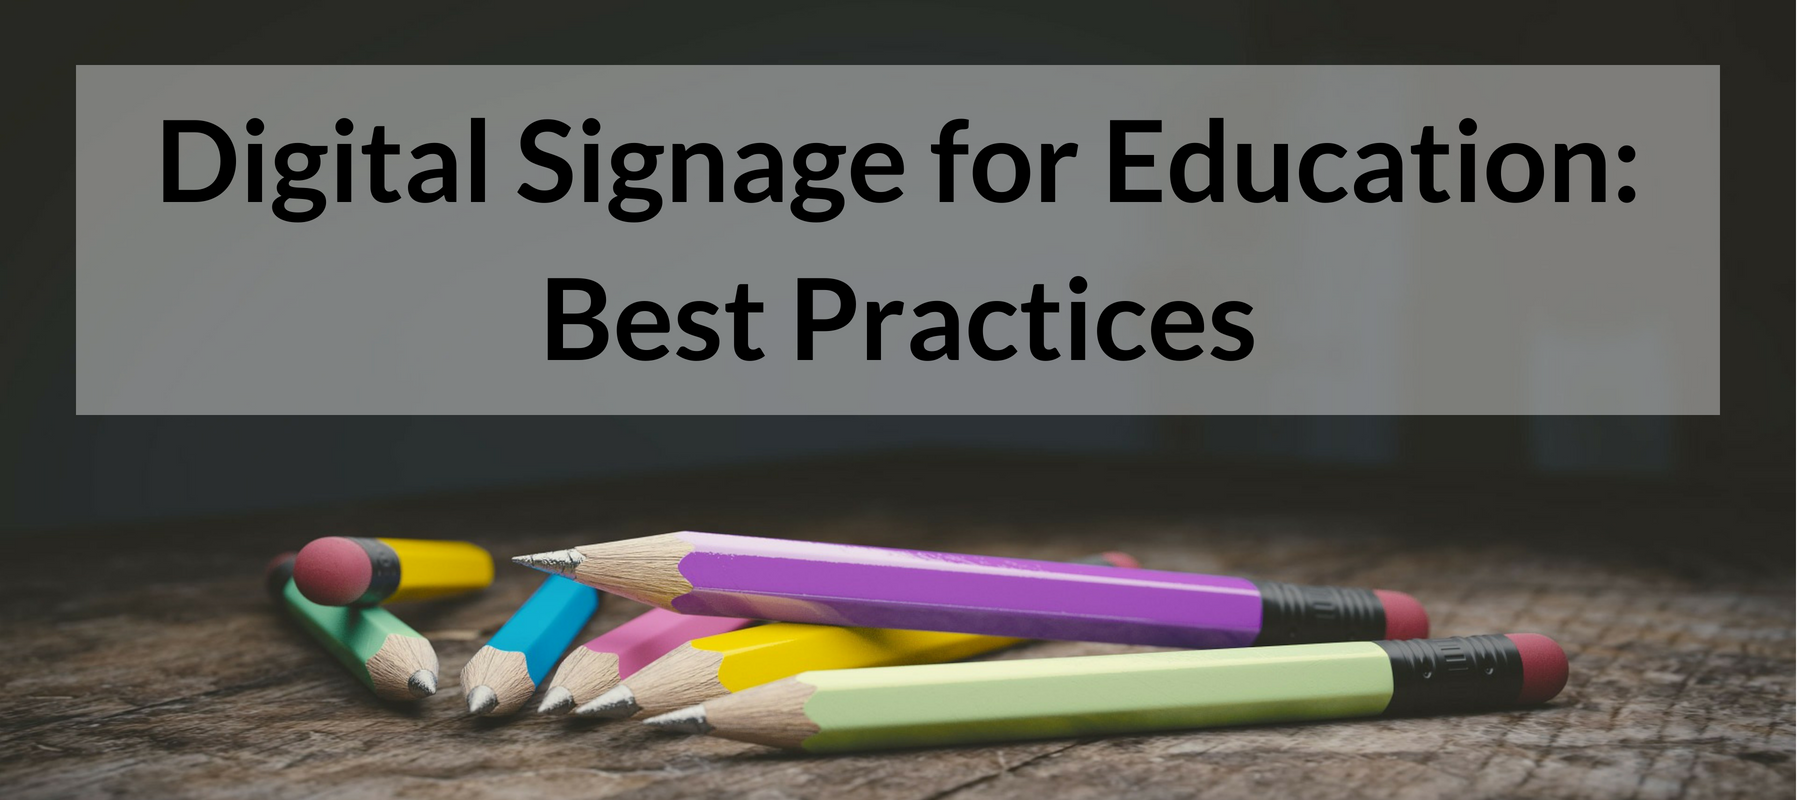 Digital Signage for Education Best Practices